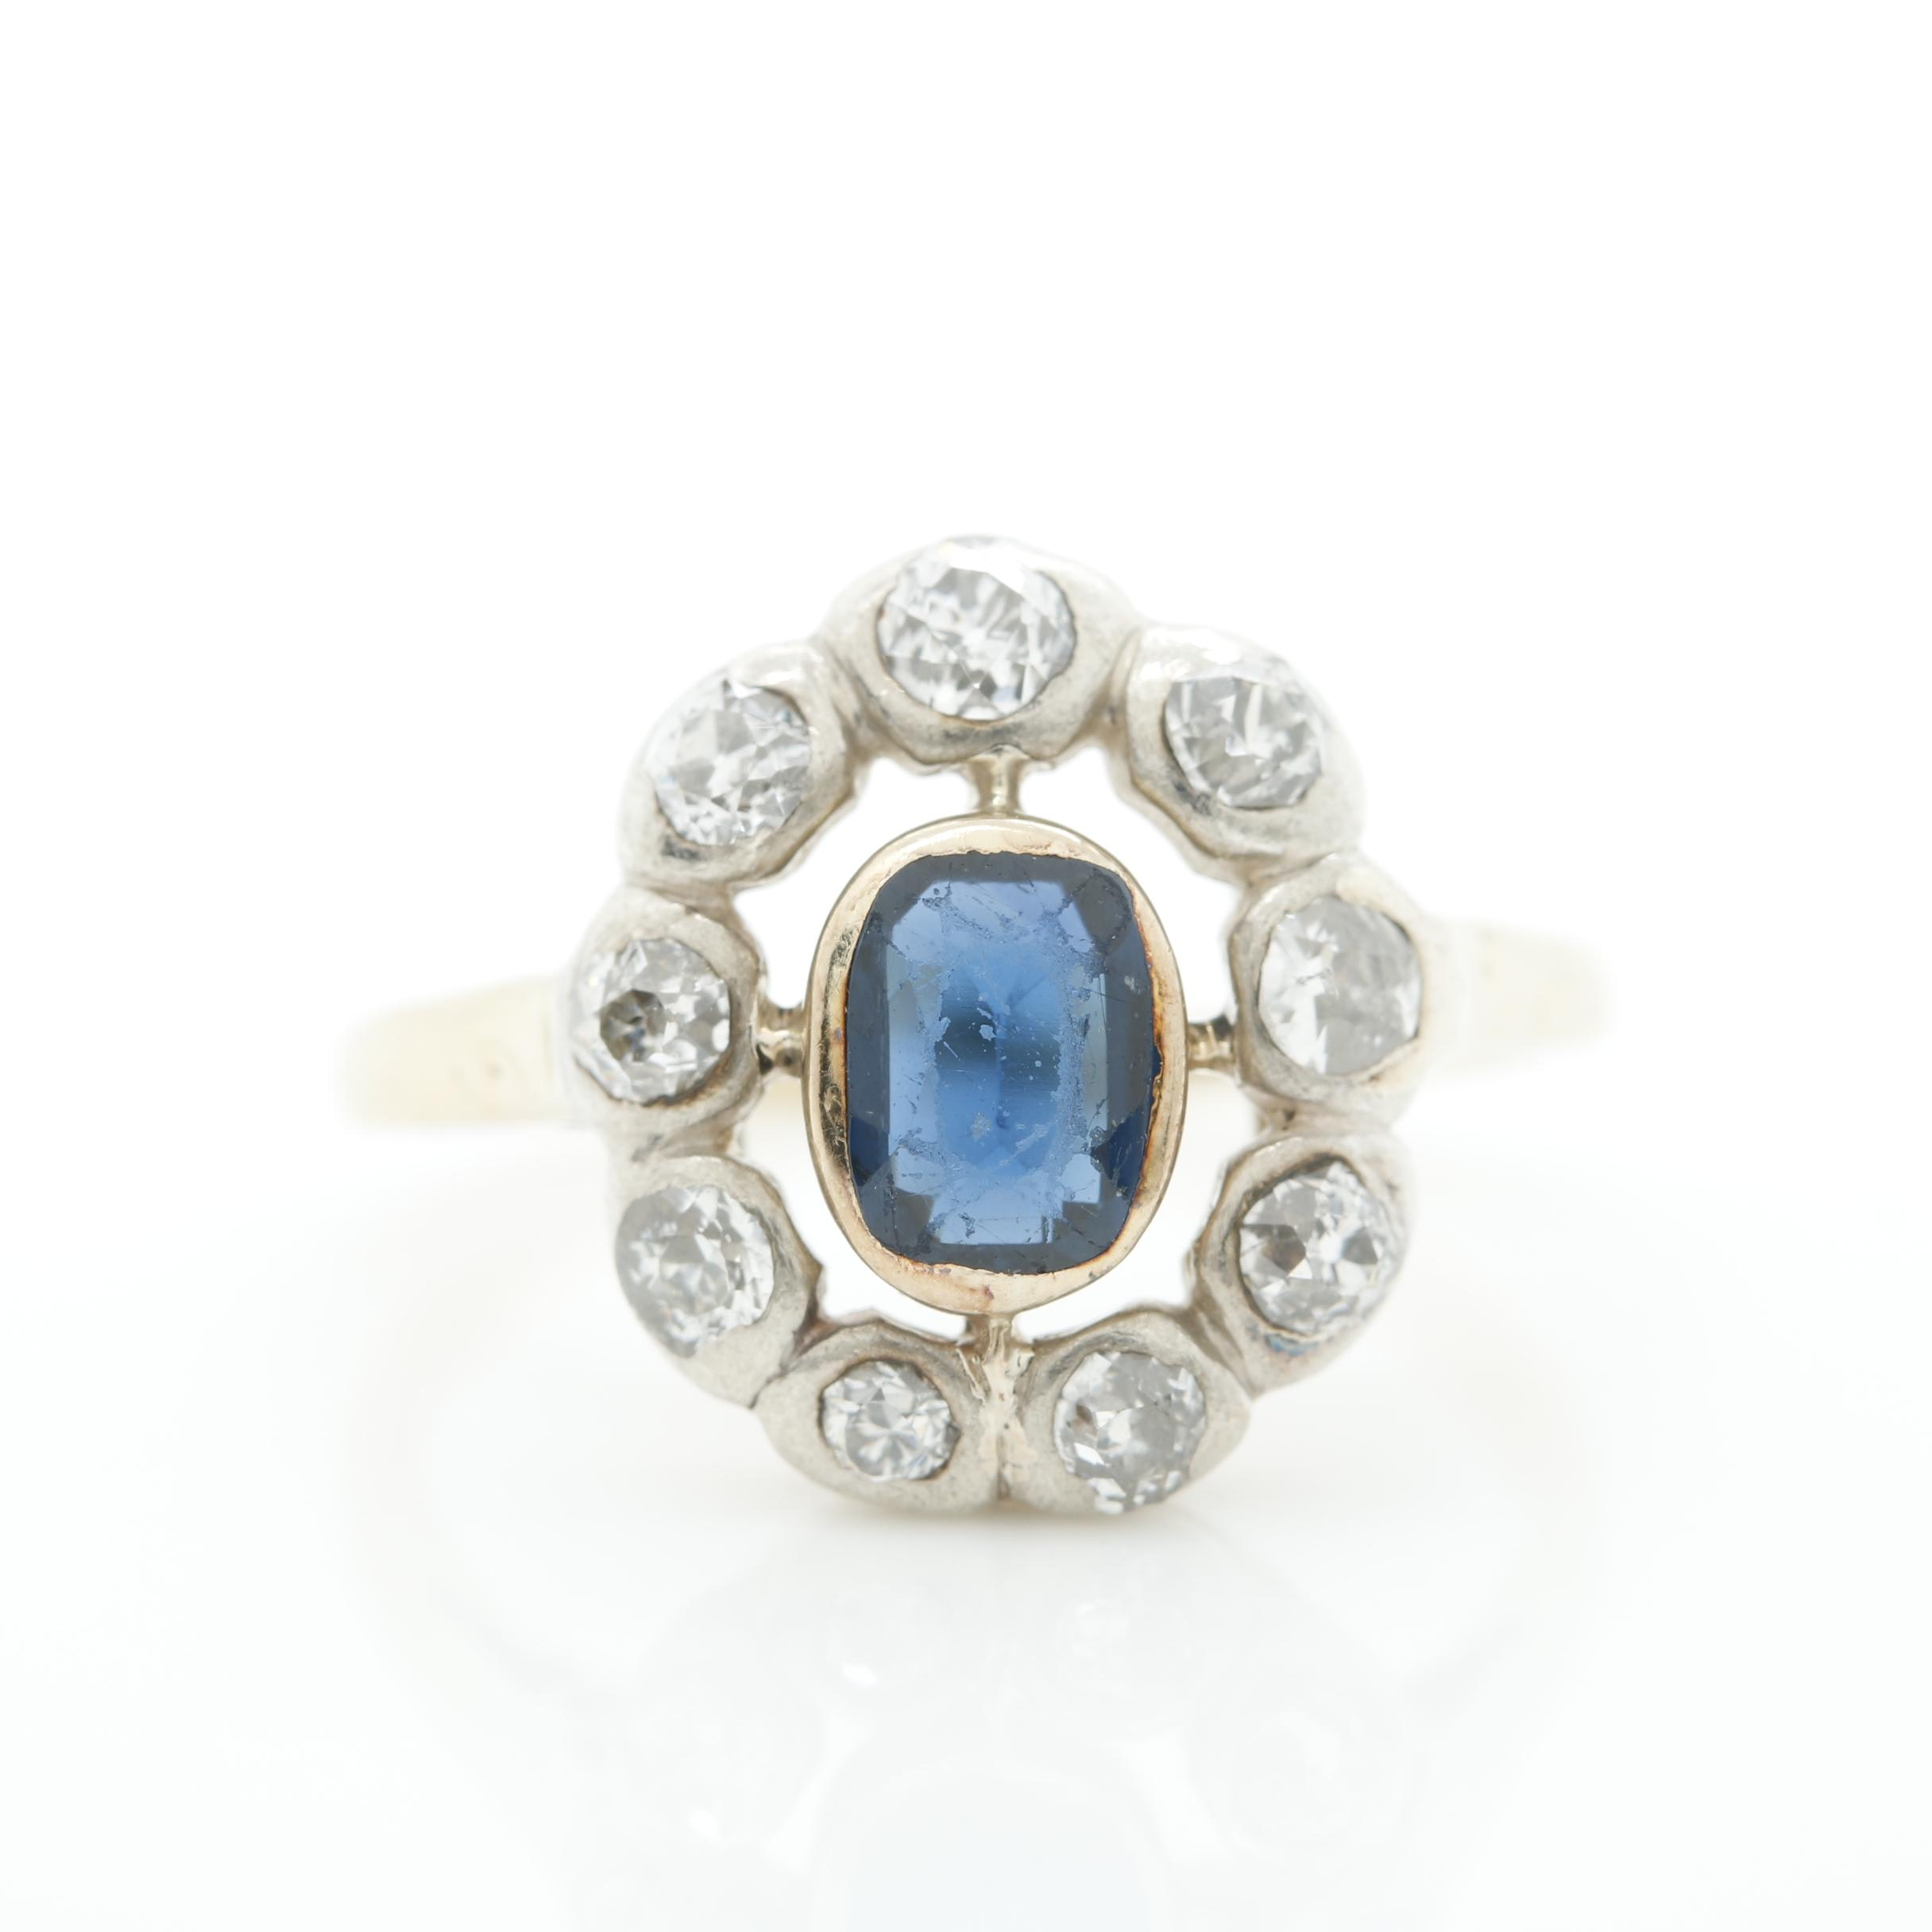 14K Yellow Gold and Sterling Silver Synthetic Sapphire and Diamond Ring